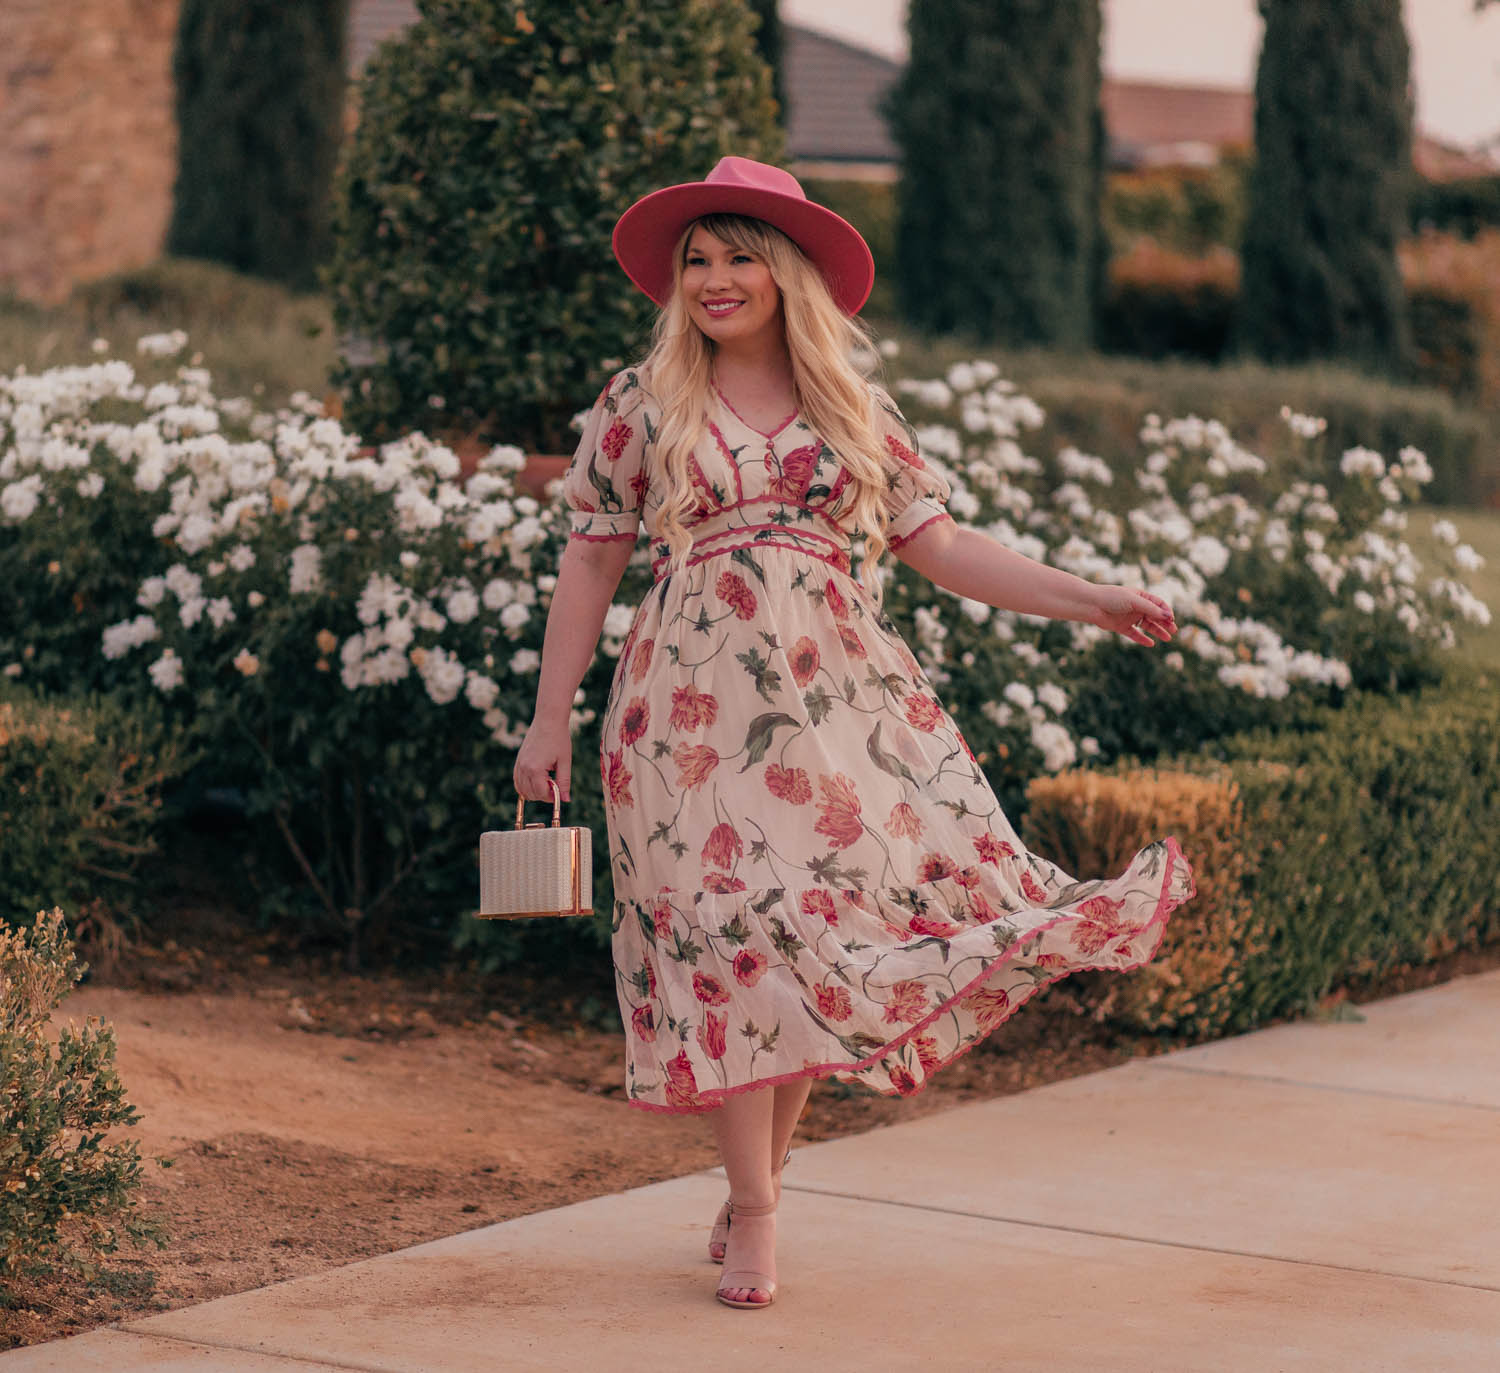 Feminine Fashion Blogger Elizabeth Hugen of Lizzie in Lace shares how to Transition a Floral Dress to Fall in 3 Ways with this gorgeous floral chicwish dress